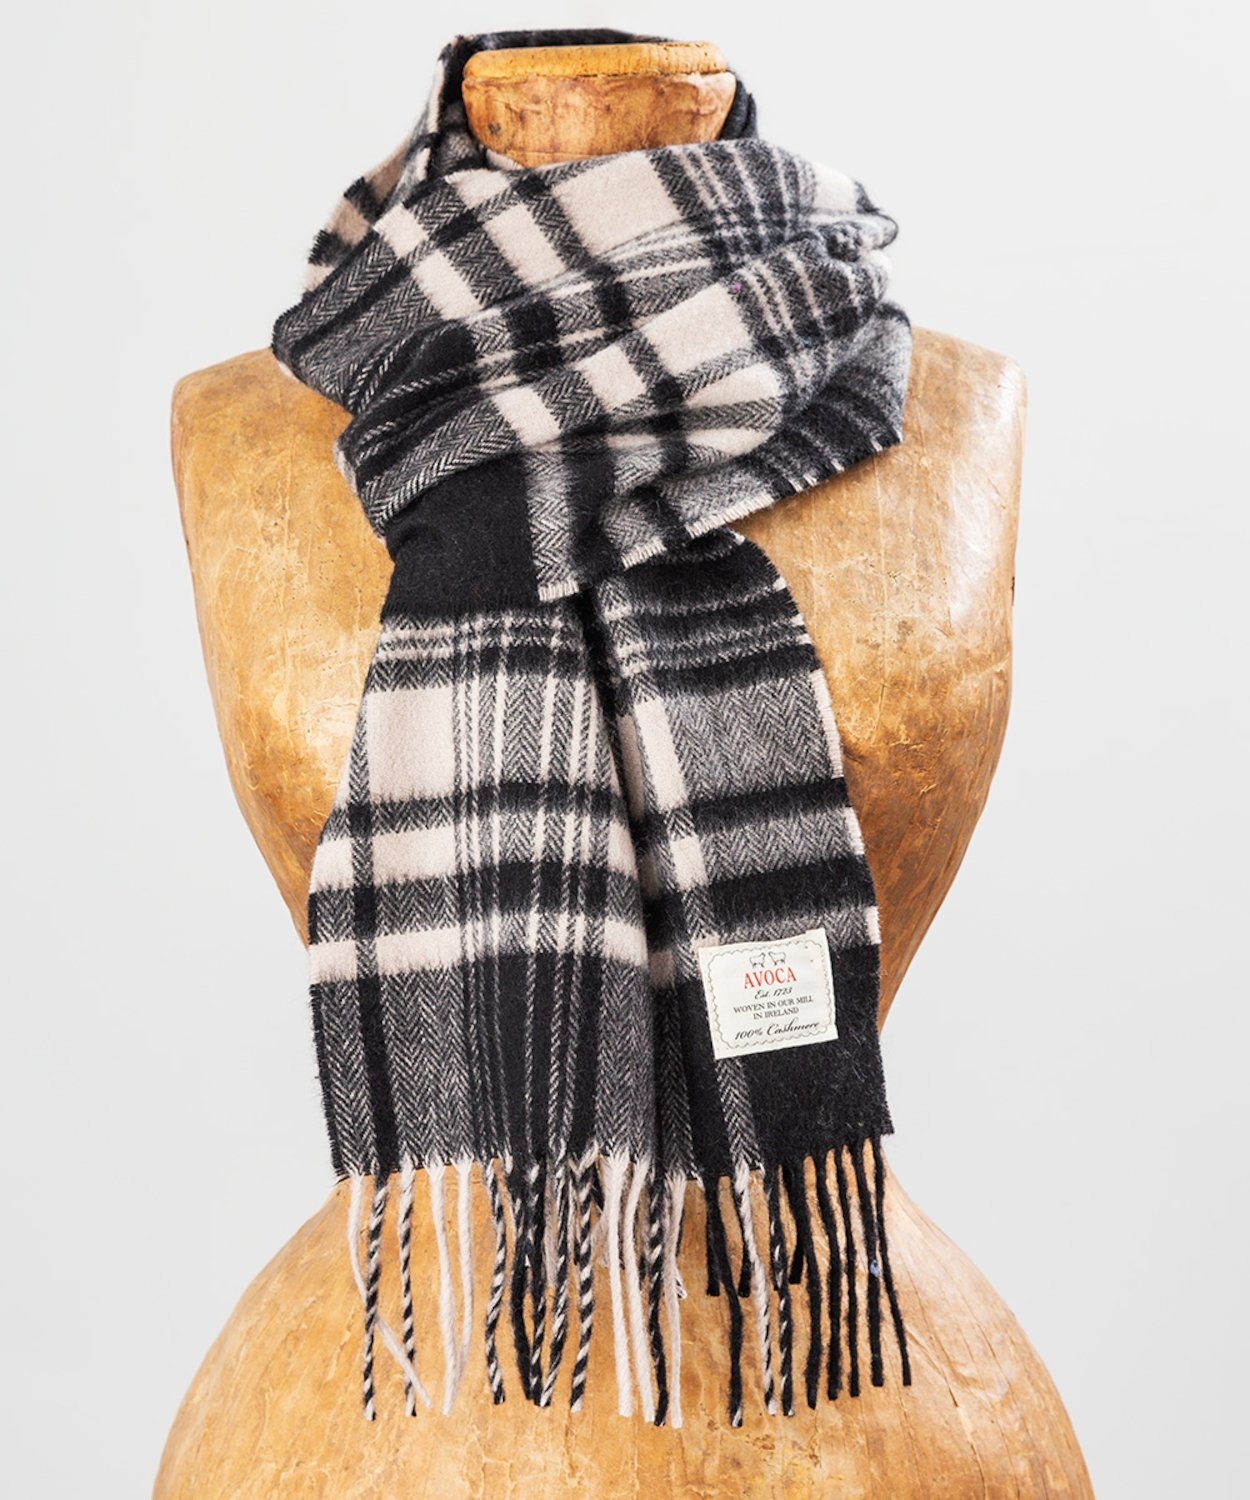 d9b0cdf65 100% Cashmere Scarves | Woven at our mill | Avoca Ireland